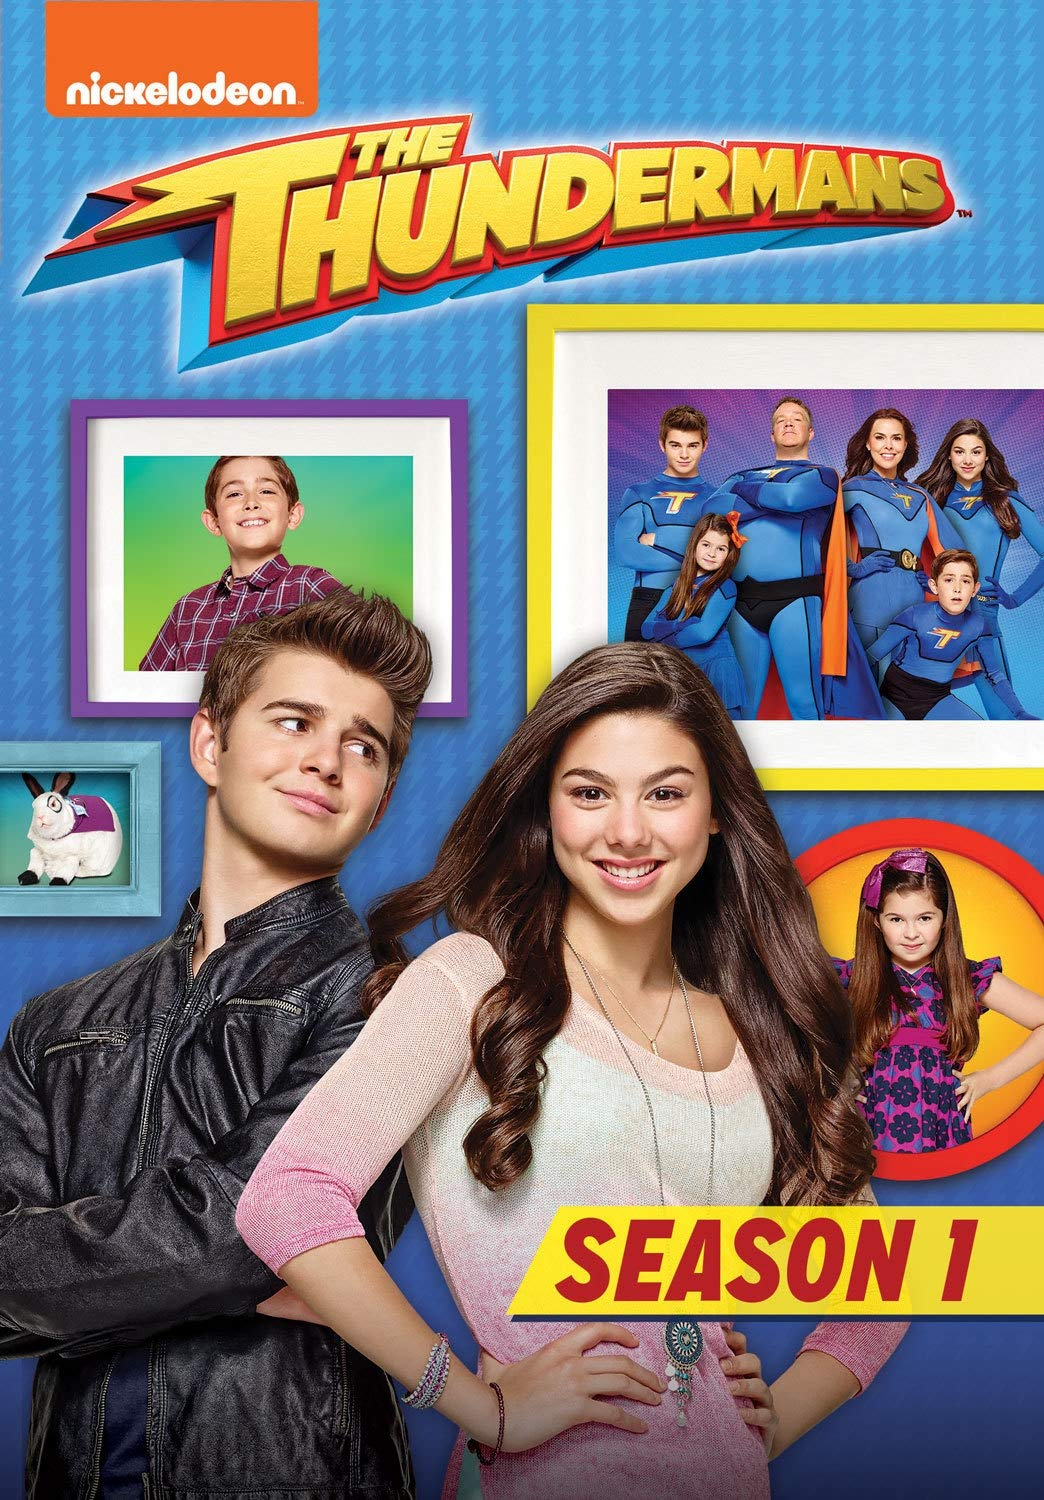 The Thundermans videography